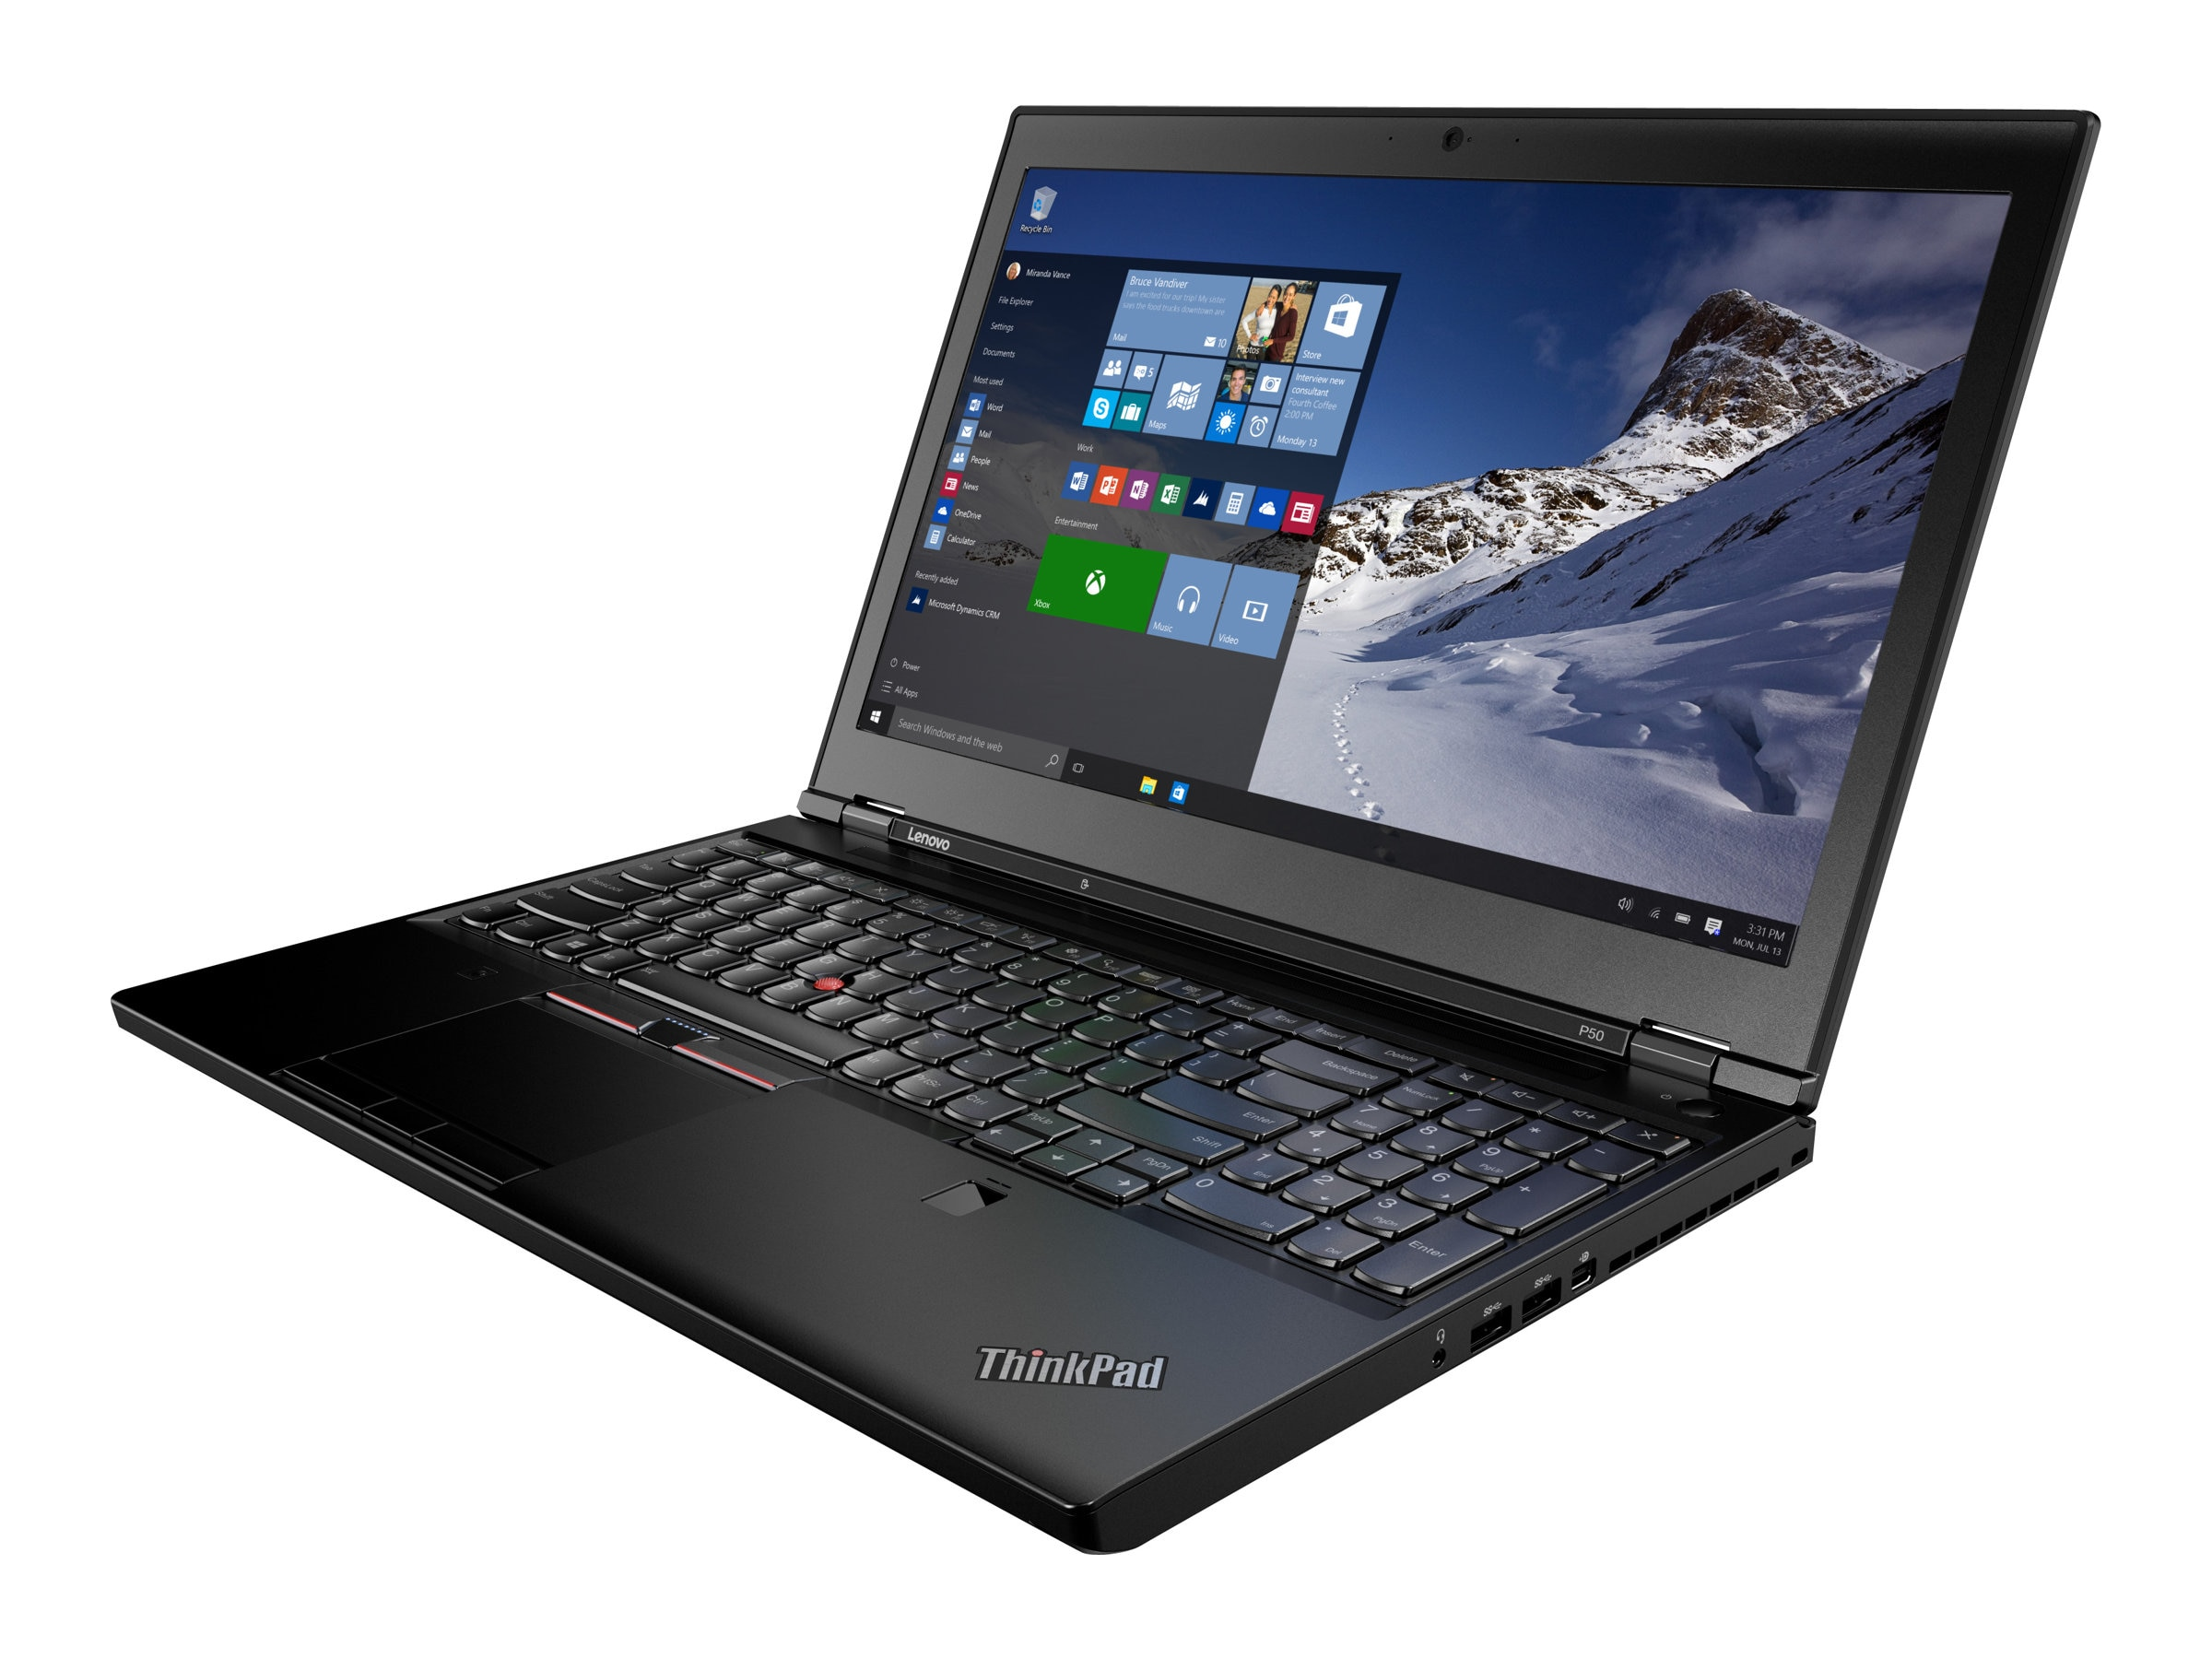 Lenovo TopSeller ThinkPad P50 Core i7-6700HQ 2.6GHz 8GB 500GB ac BT FR WC XRite 6C 15.6 FHD MT W10P64, 20EN001GUS